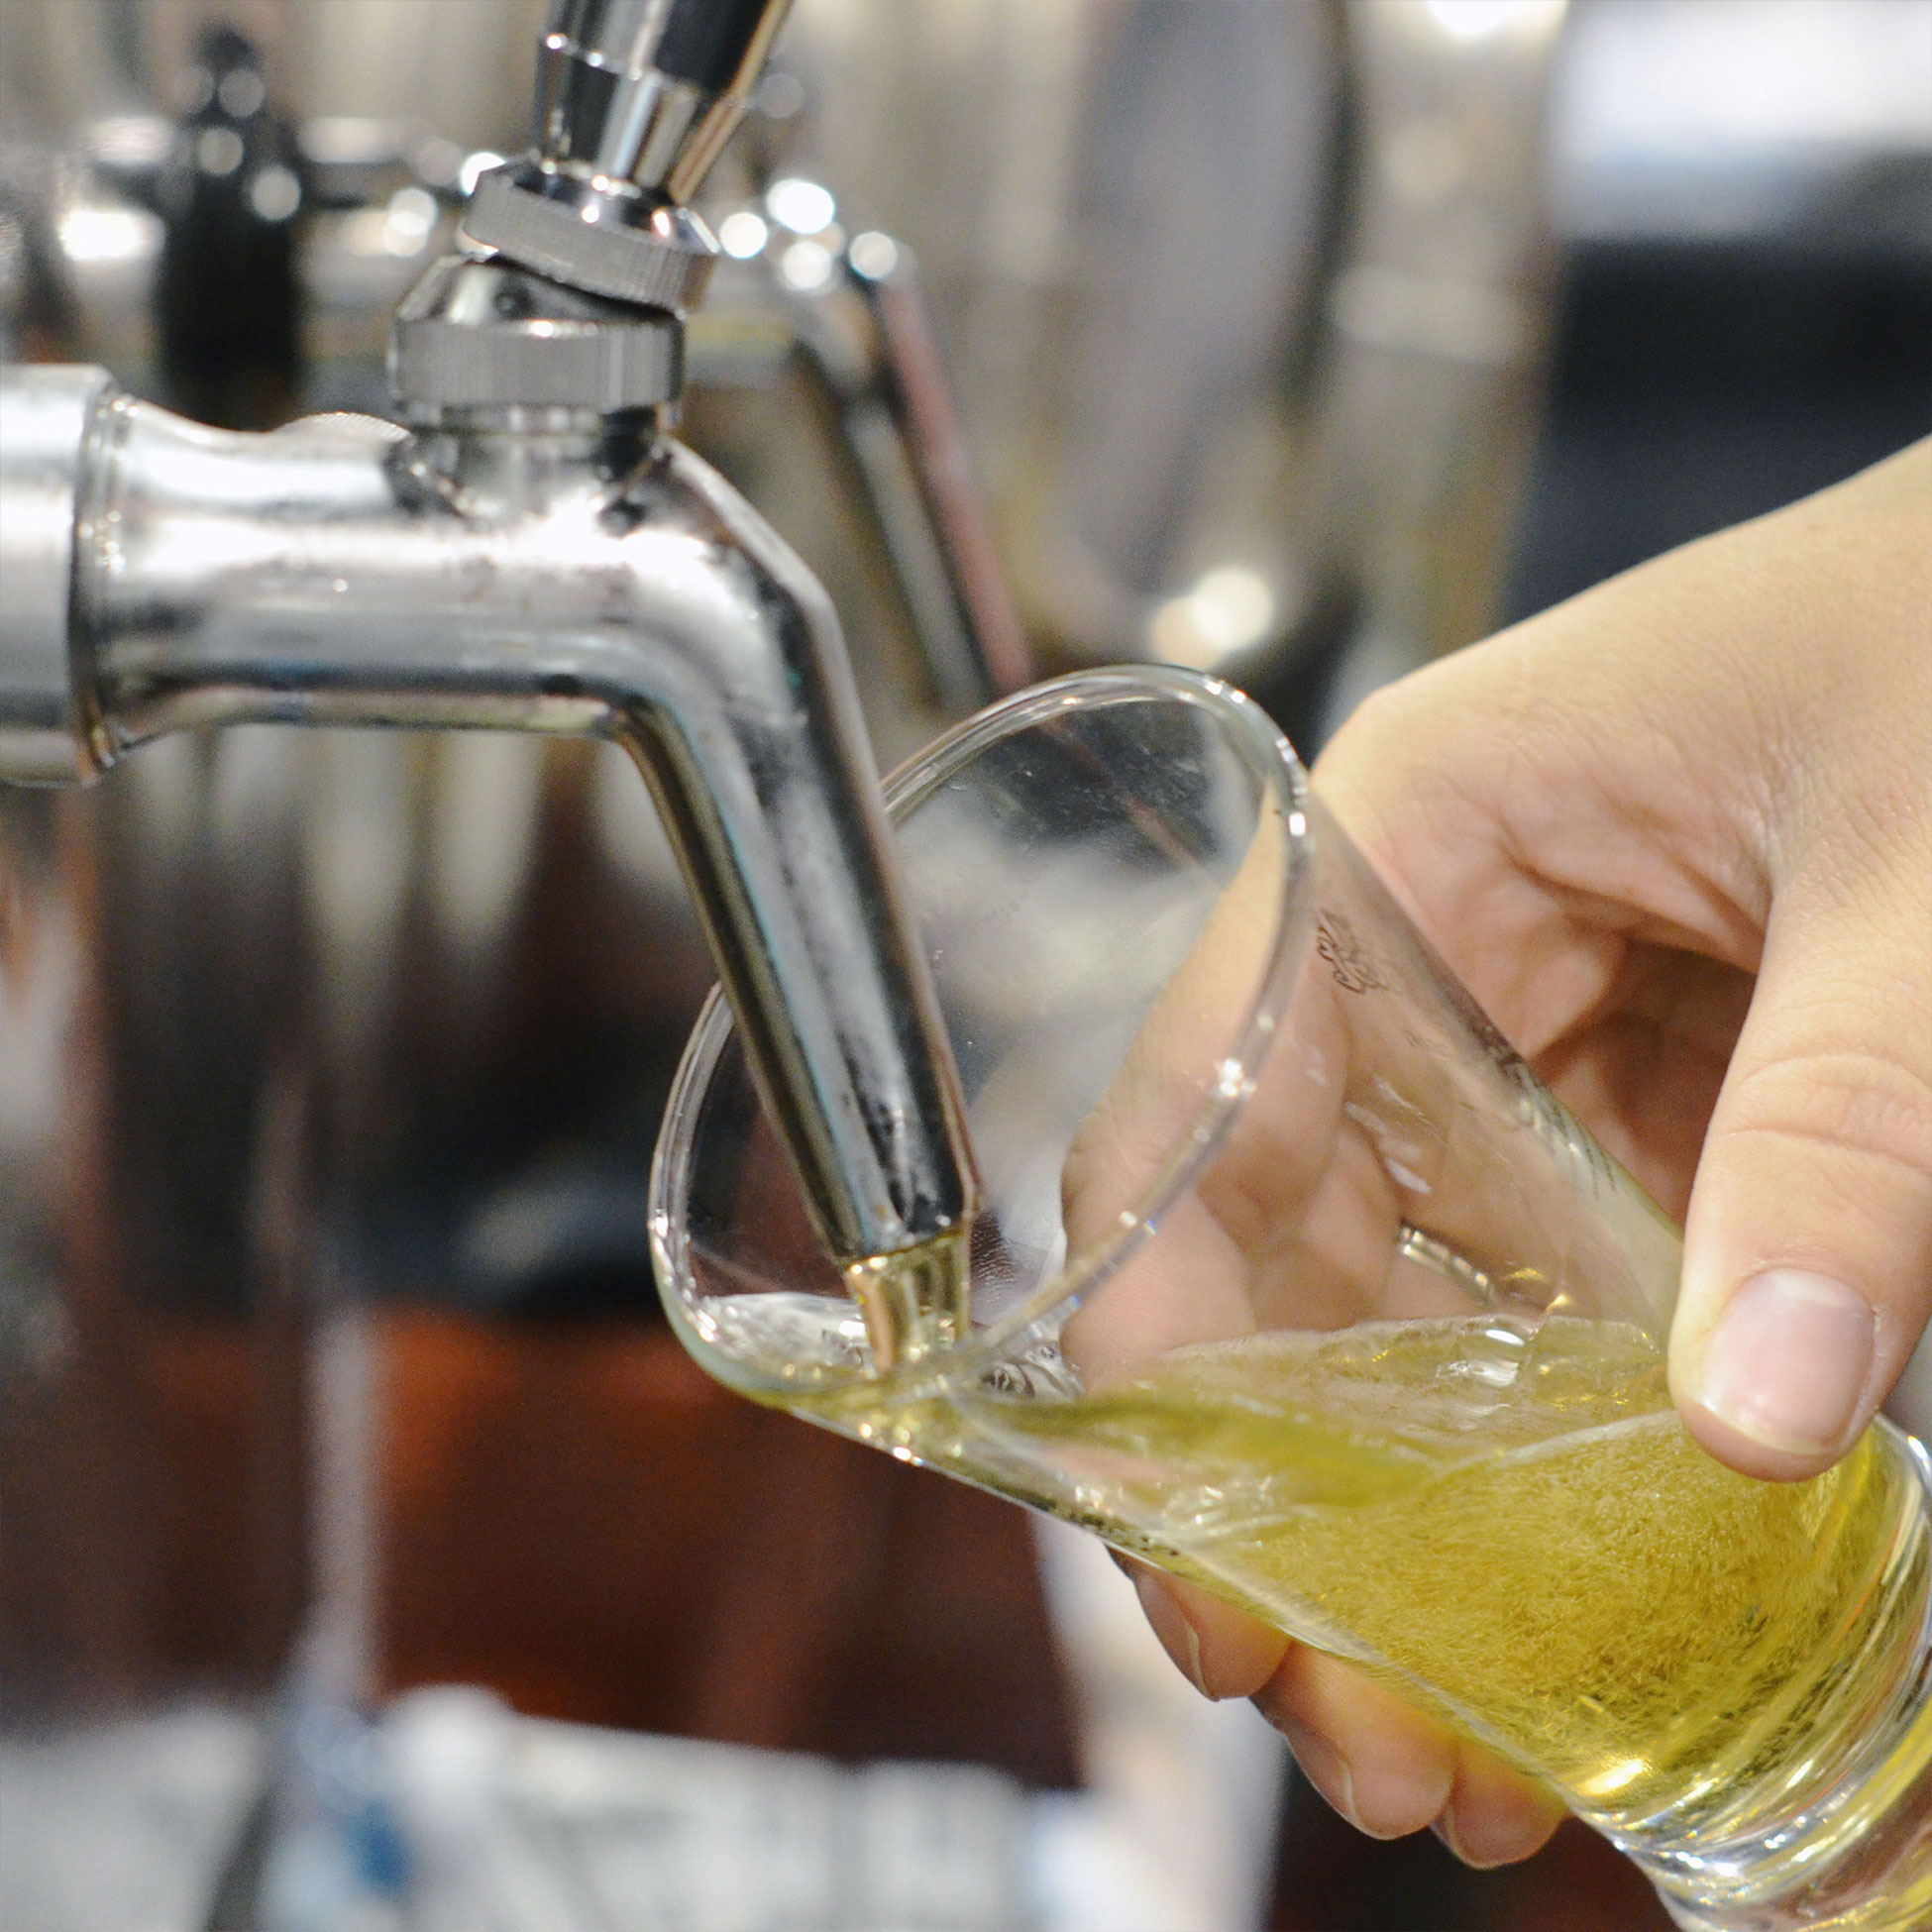 free-images-beer-pouring-creative-commons-cc-commercial-royalty-free-photo